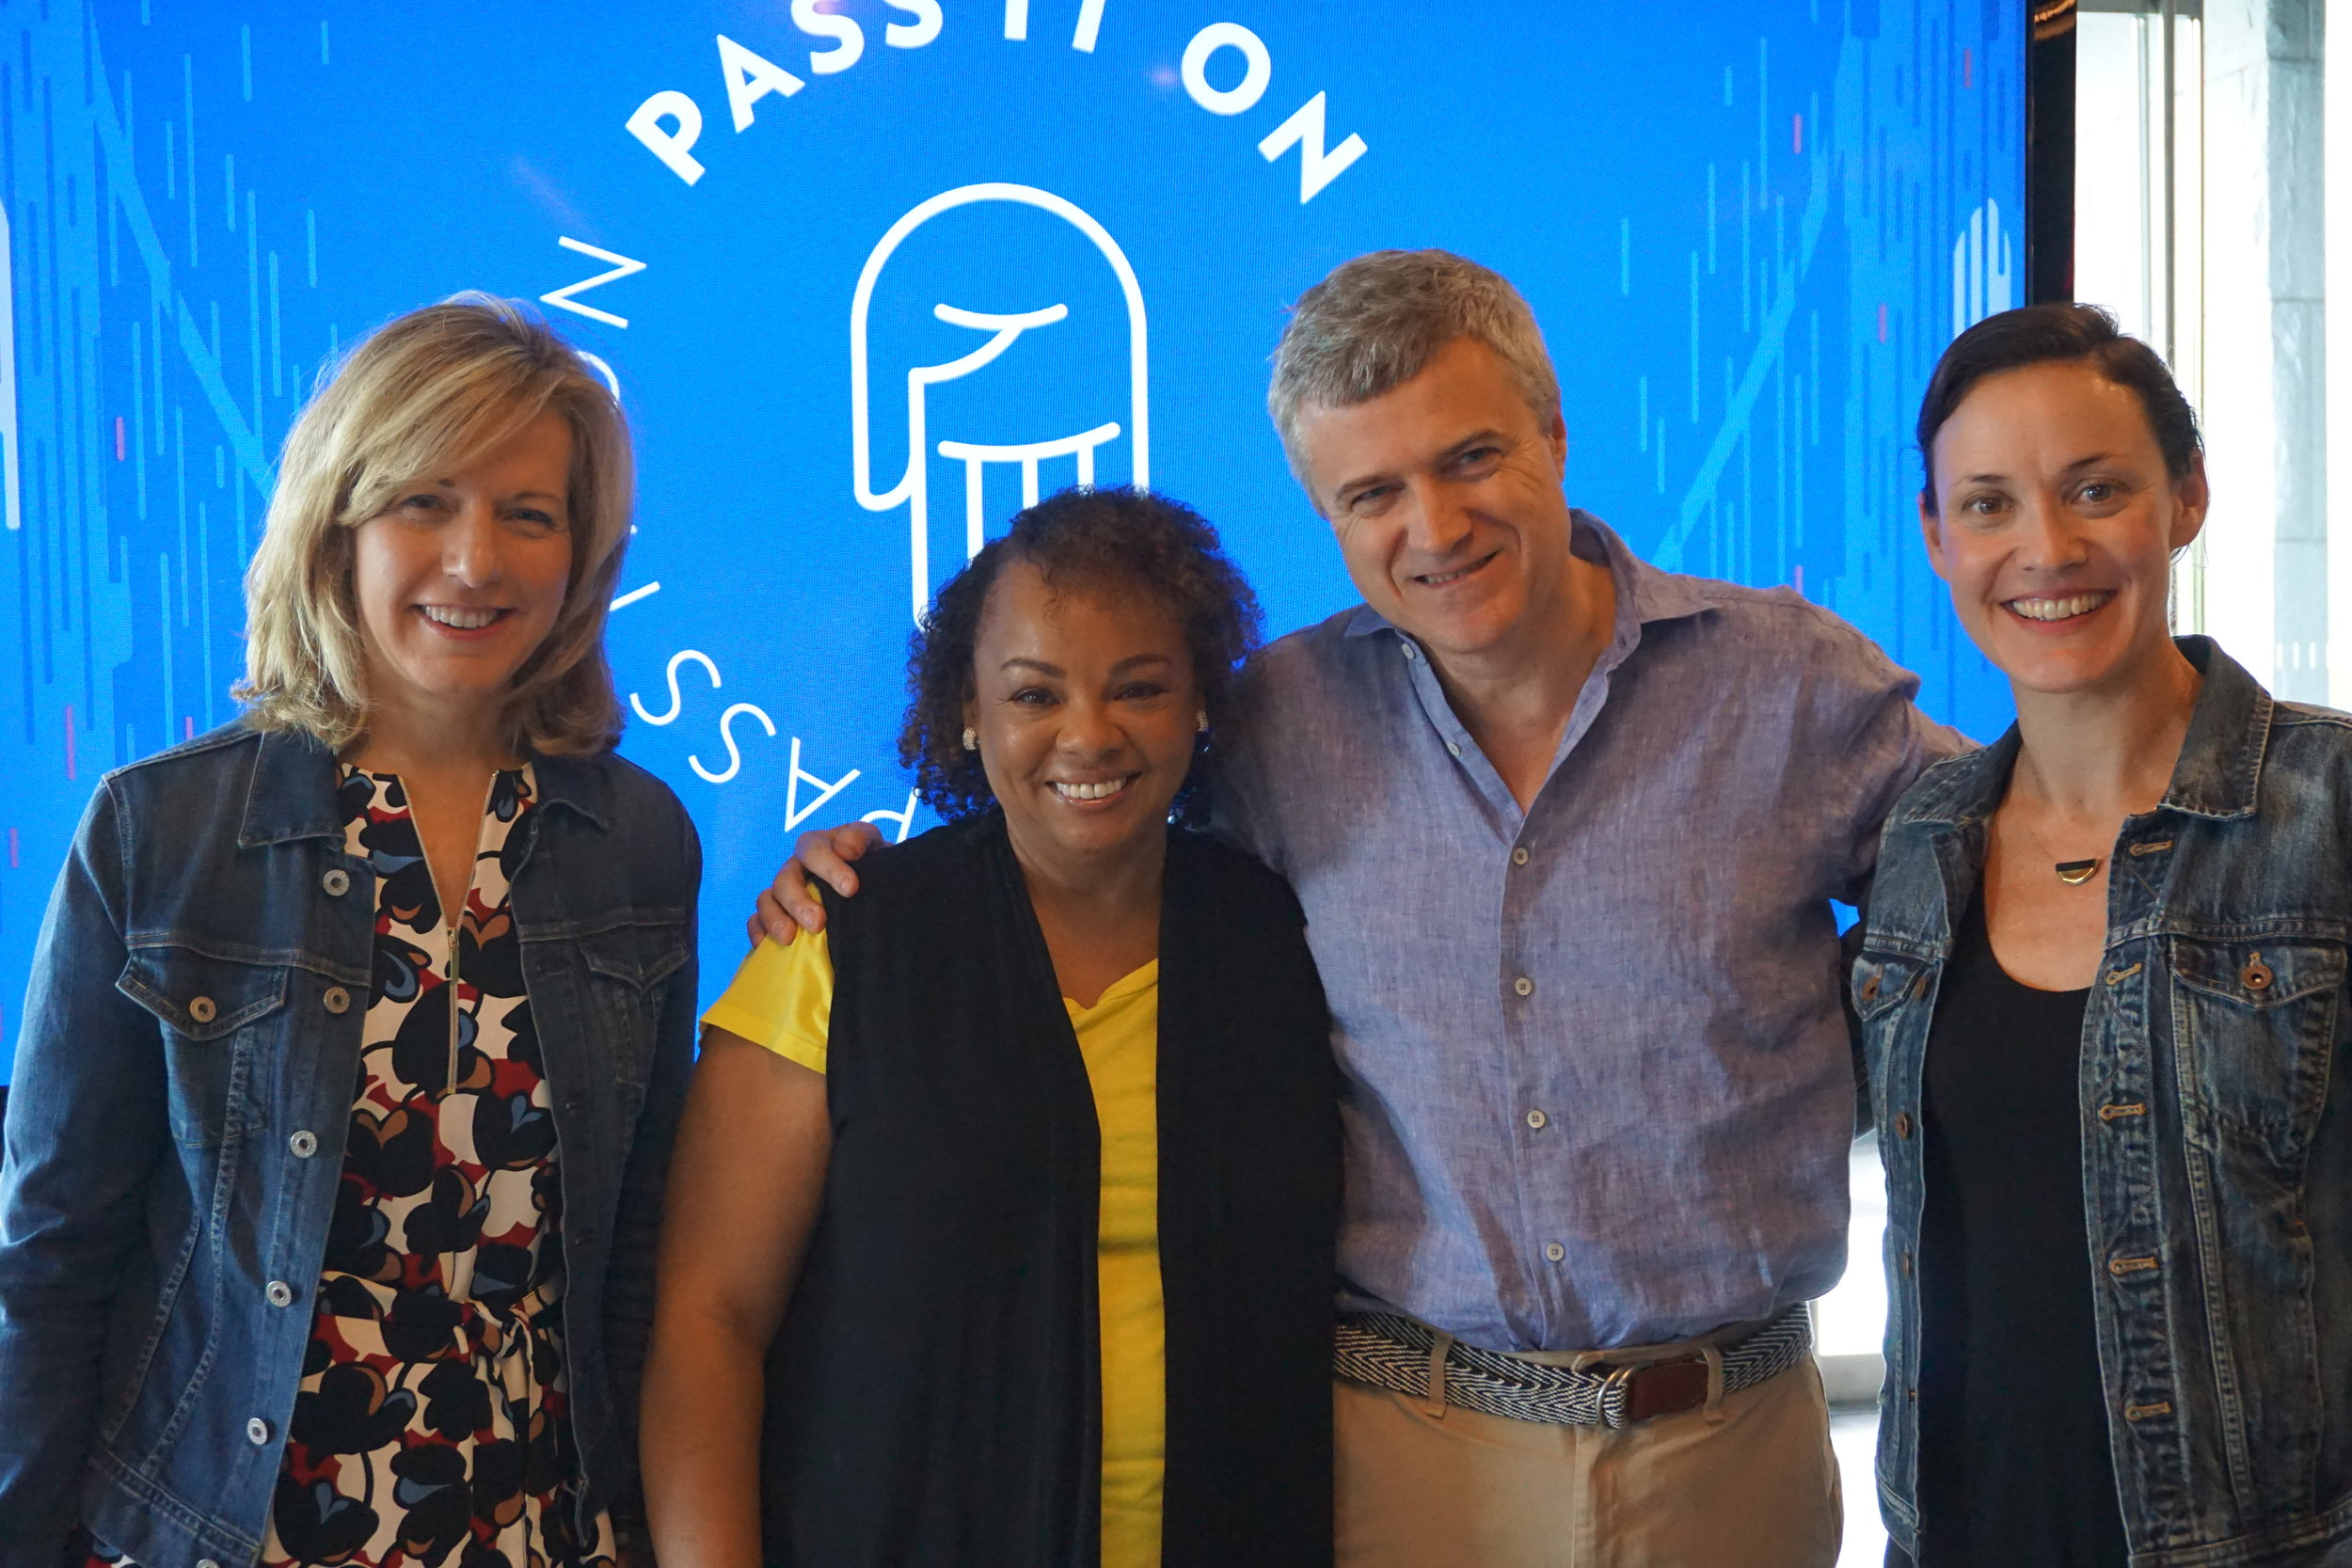 Judy pictured with other senior leaders at WPP, including Mark Read (on Judy's right), who is her boss and the Global CEO at WPP.